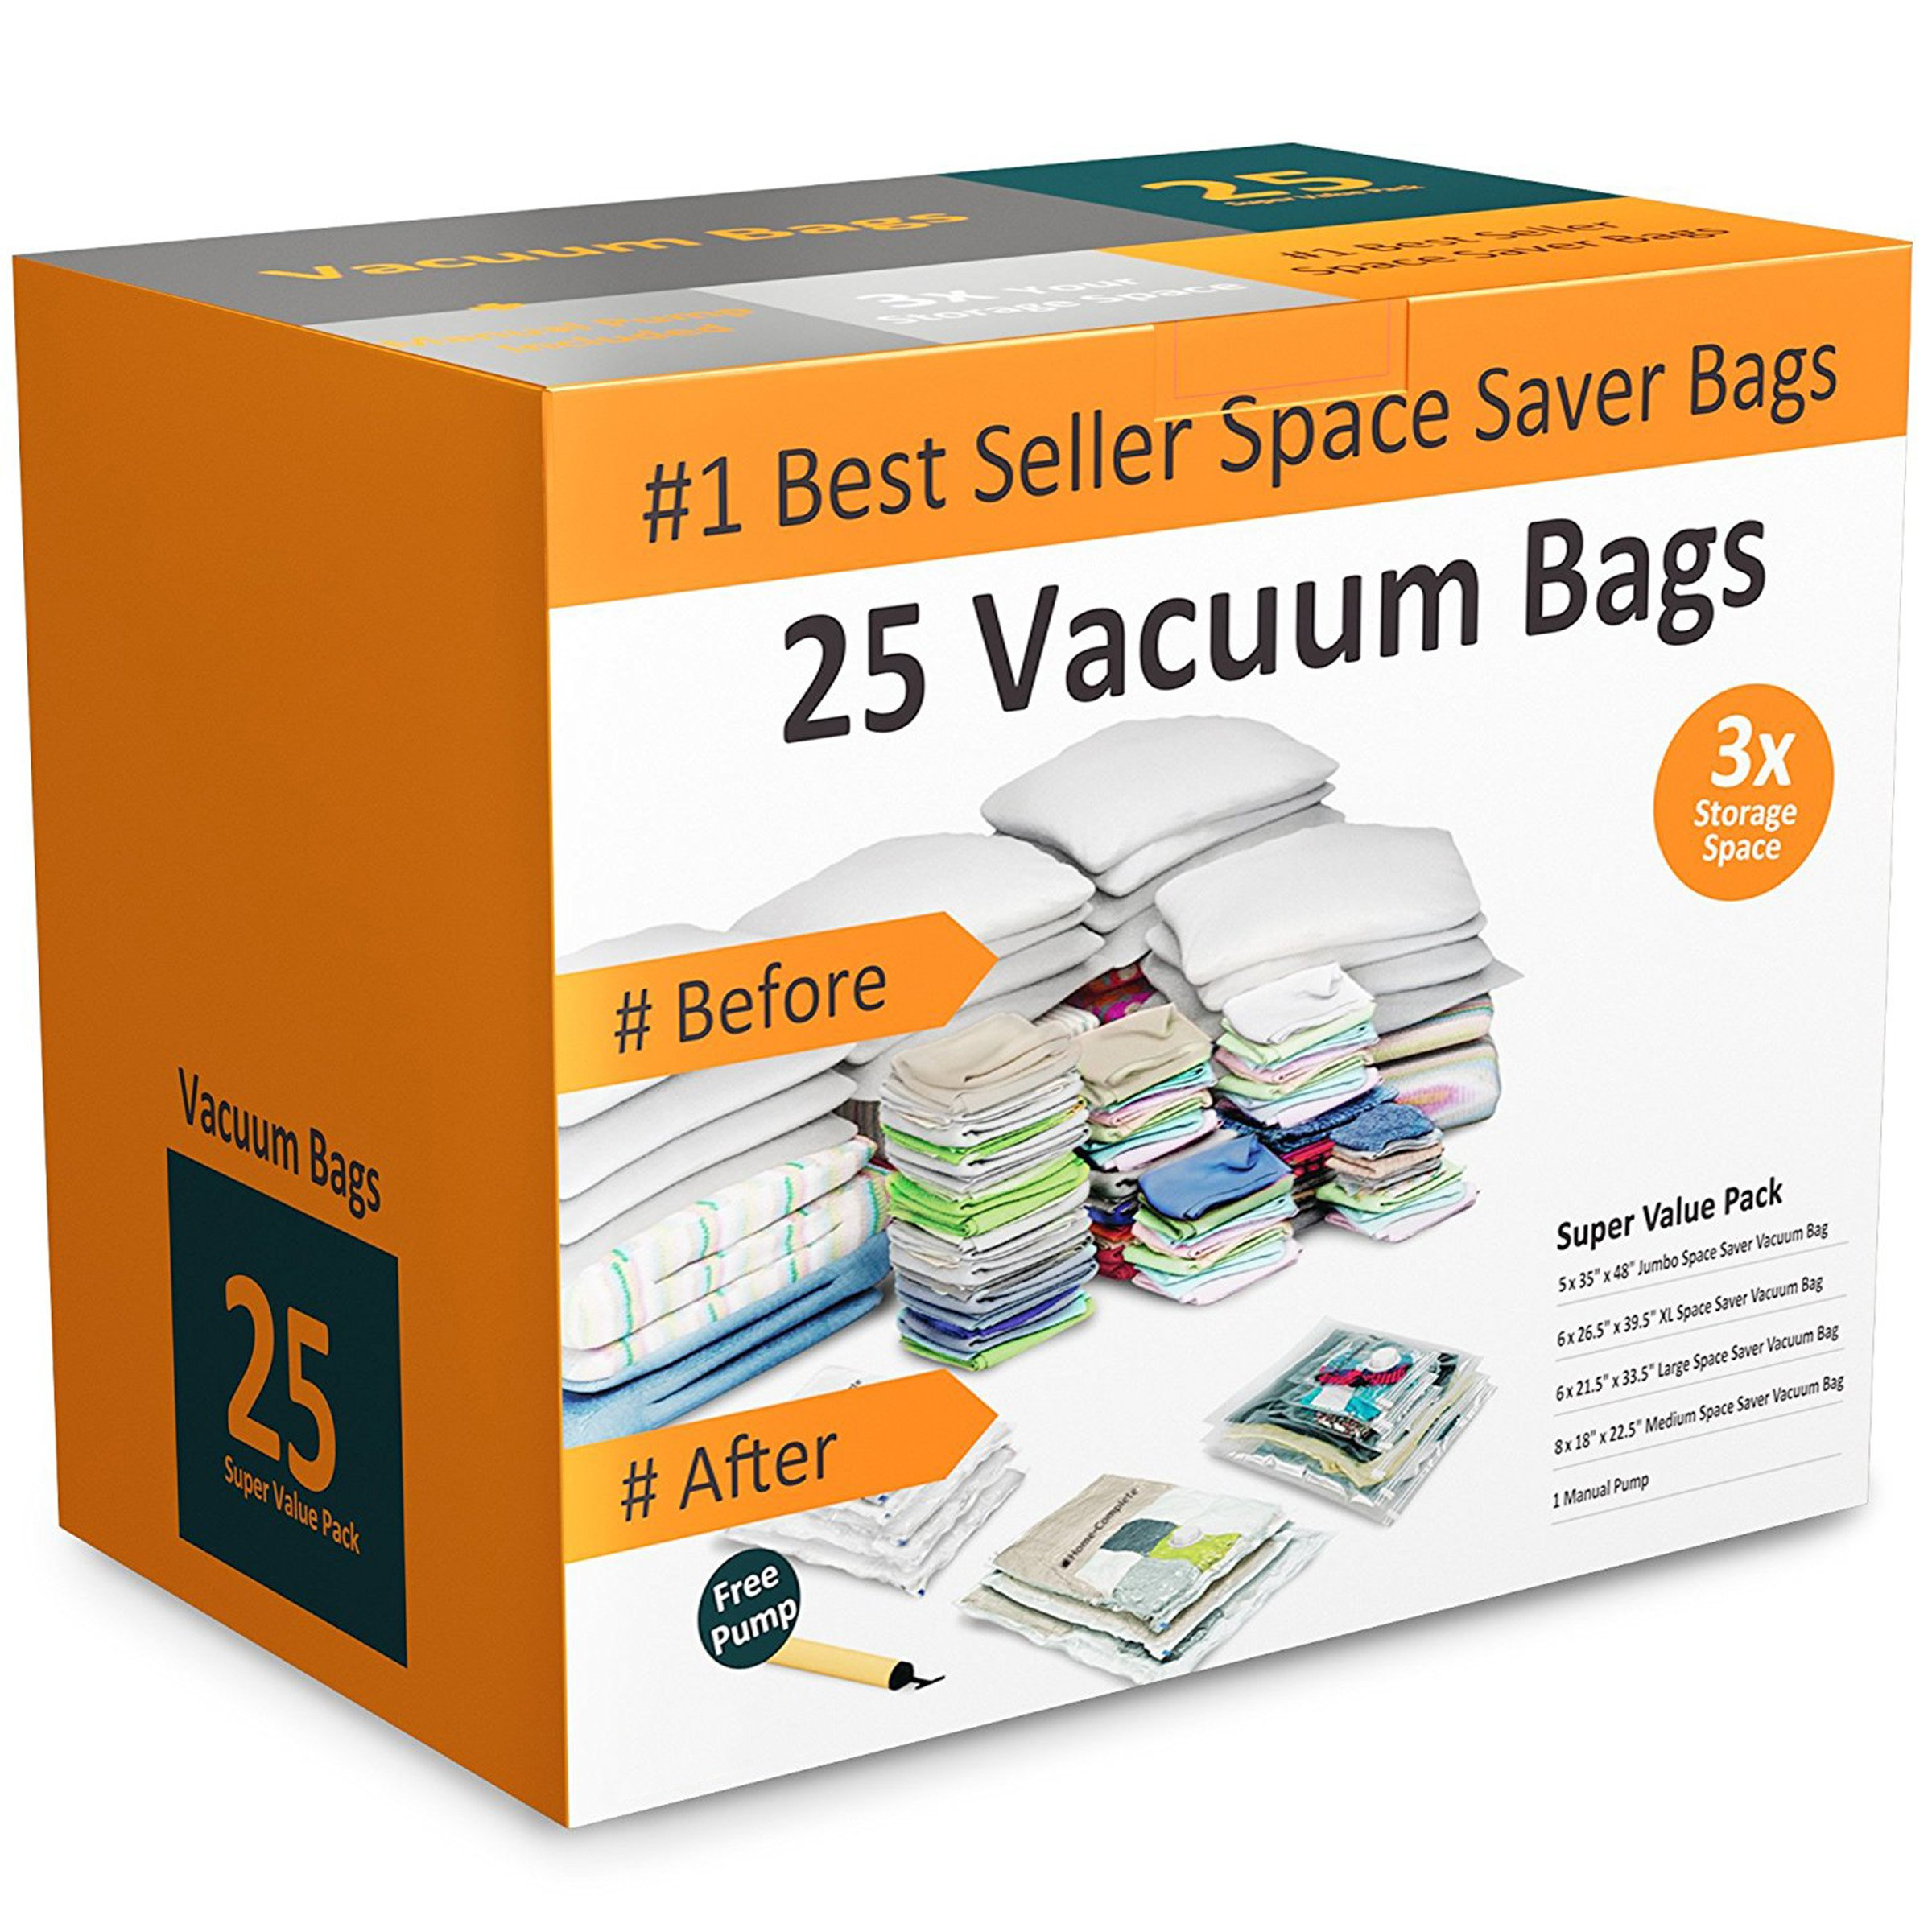 Everyday Home 83-79 Vacuum Storage Bags-Space Saving Air Tight Compression-Shrink Down Closet Clutter, Store and Organize Clothes, Linens, Seasonal Items, 25 by Everyday Home